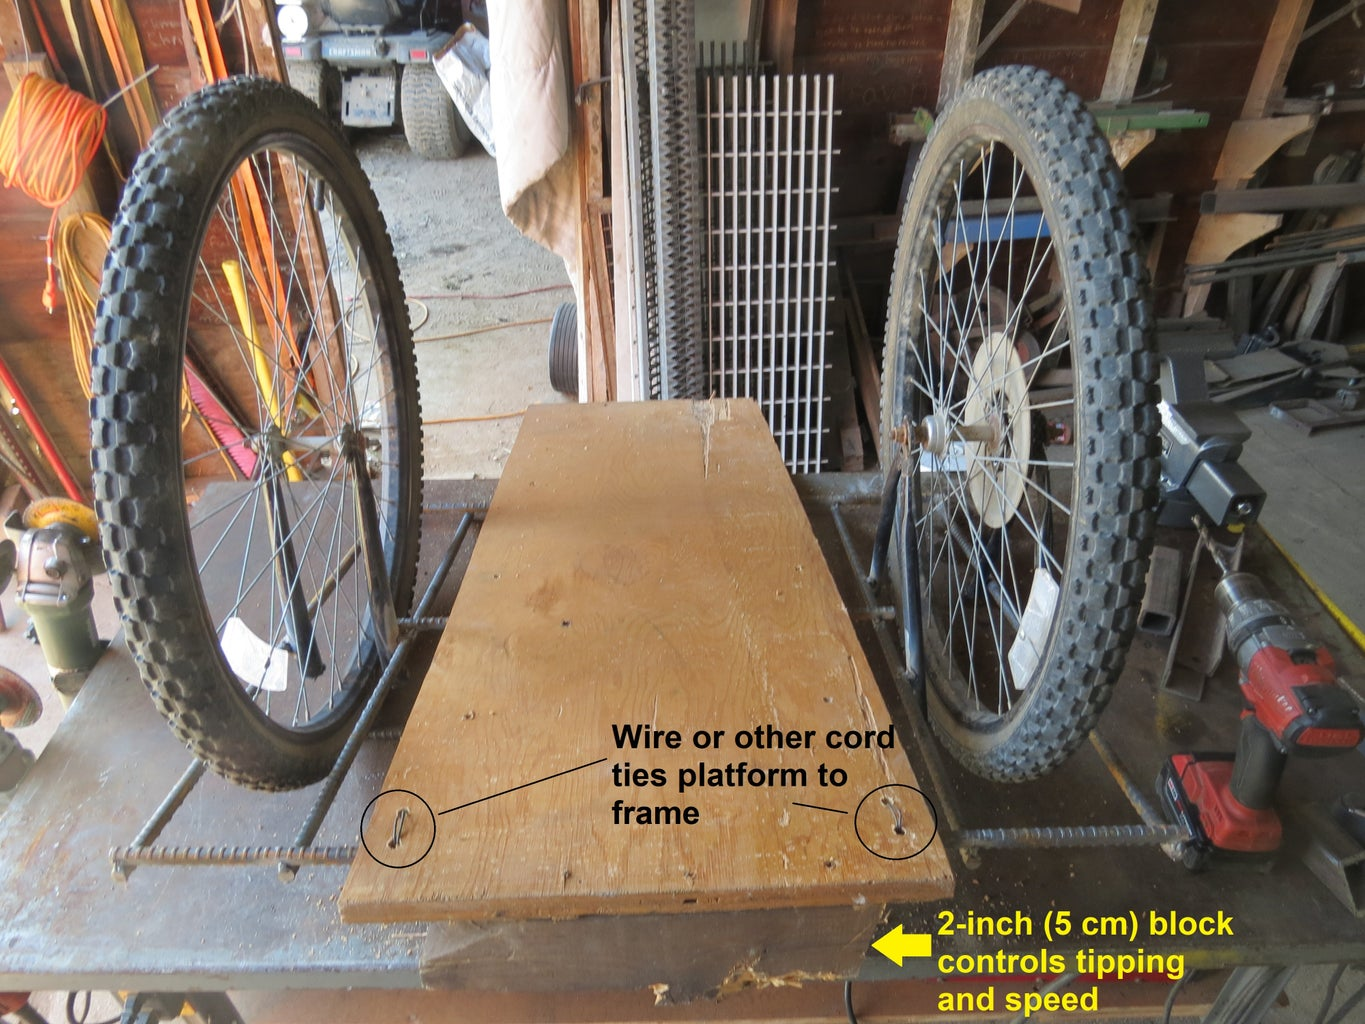 Attach a Platform Between the Wheels With Cords